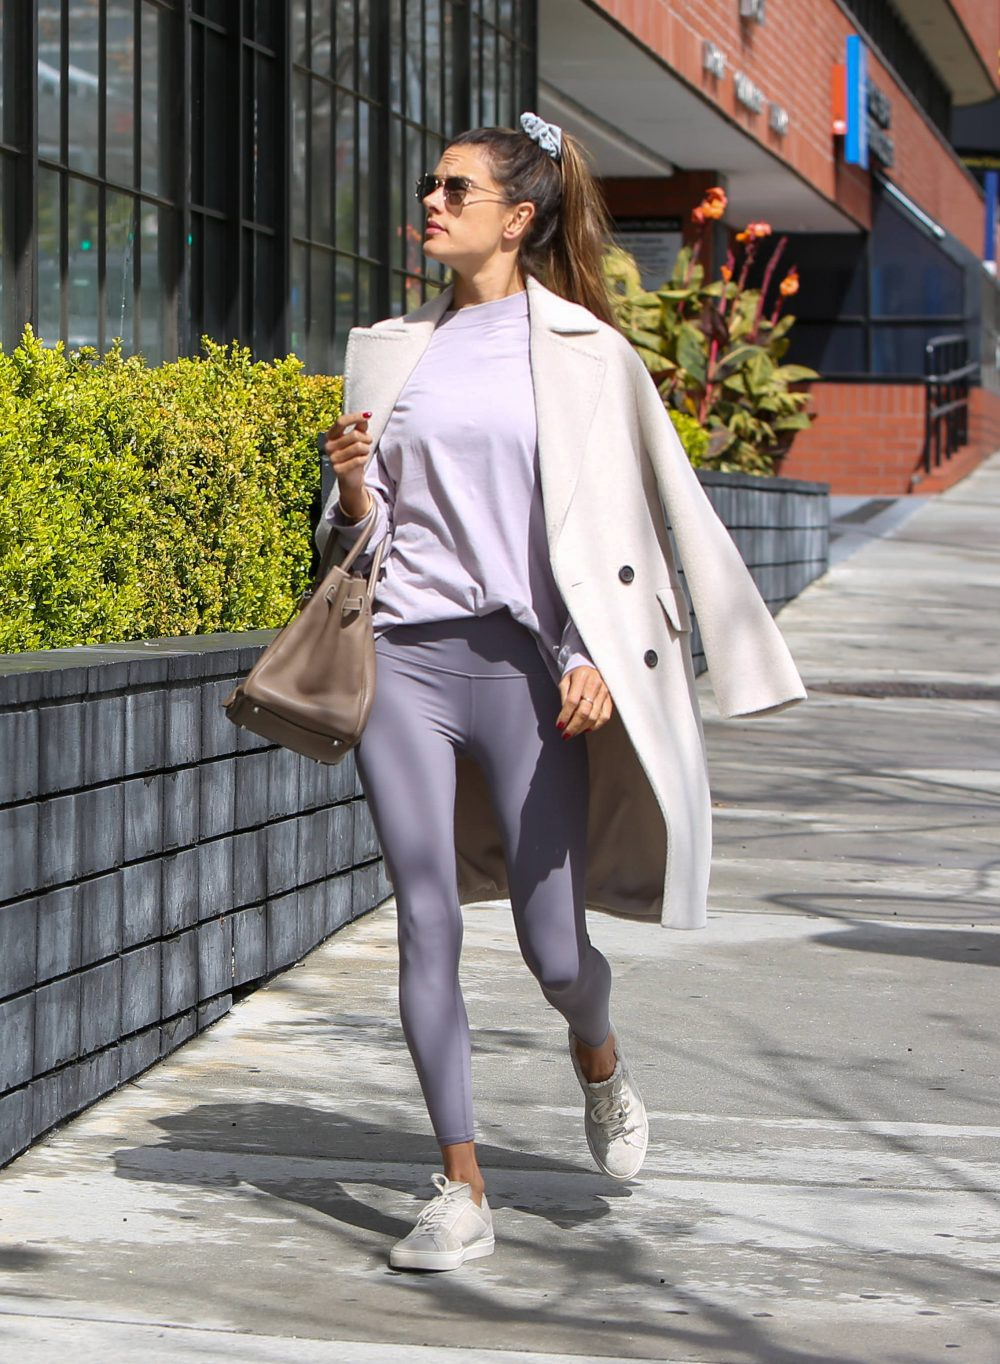 Alessandra Ambrosio out and about